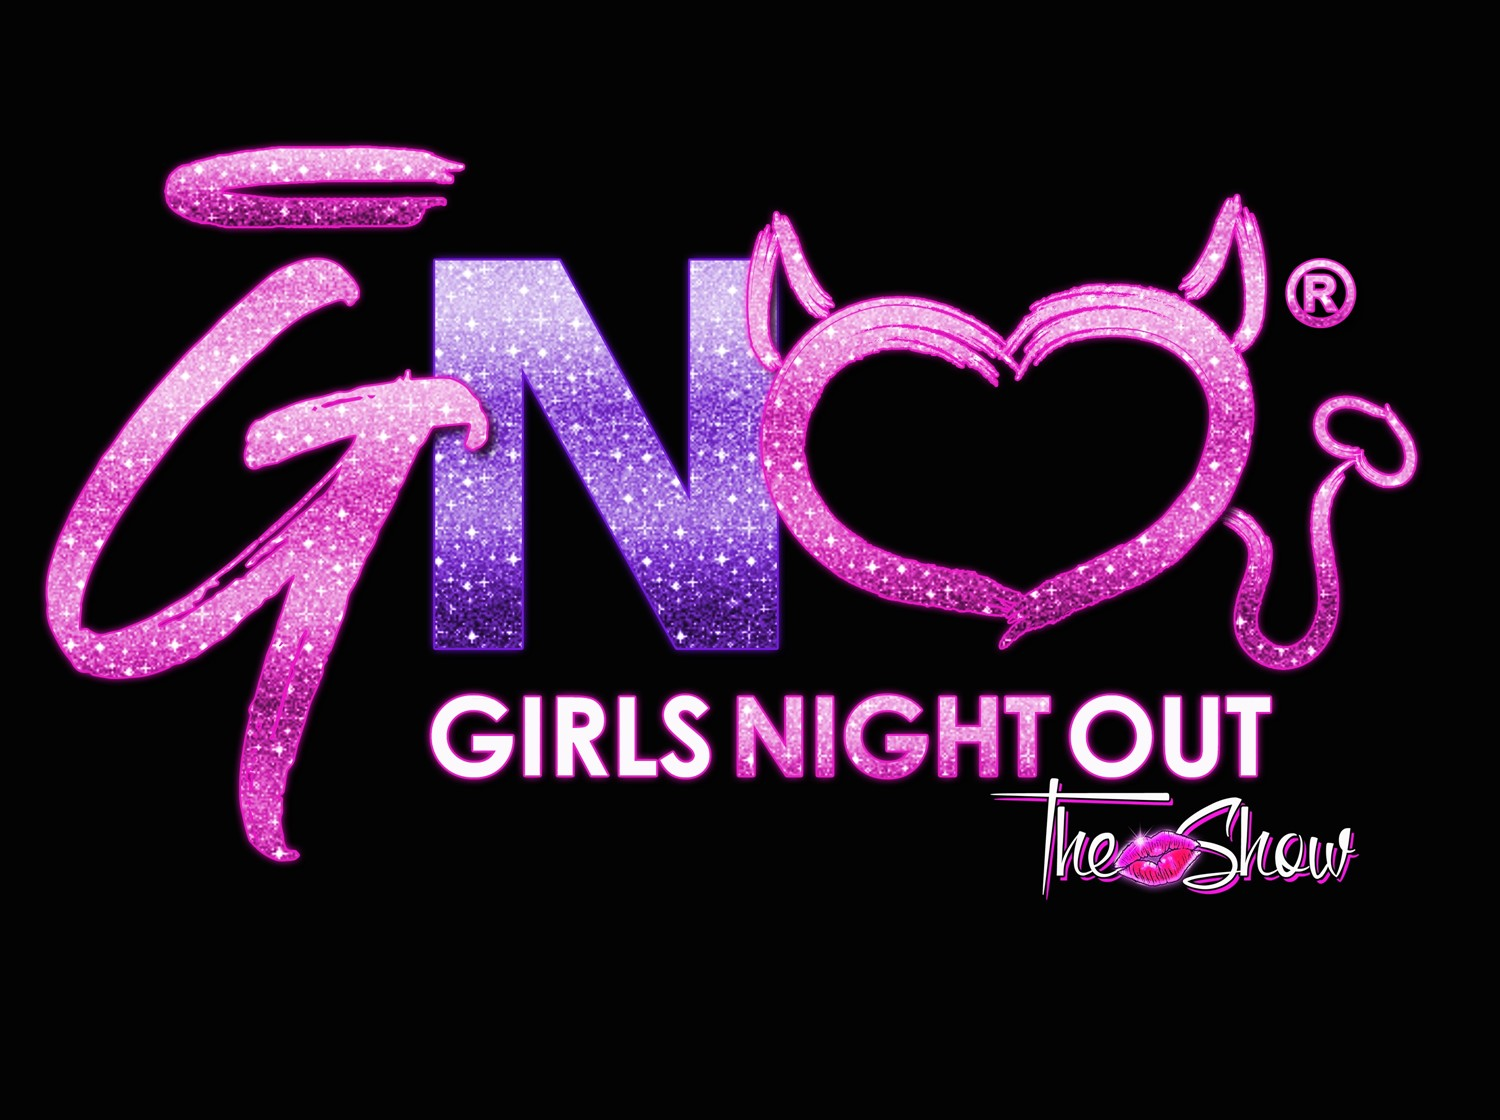 West End Trading Co. Sanford, FL on Feb 19, 19:30@The West End Trading Co. - Buy tickets and Get information on Girls Night Out the Show tickets.girlsnightouttheshow.com